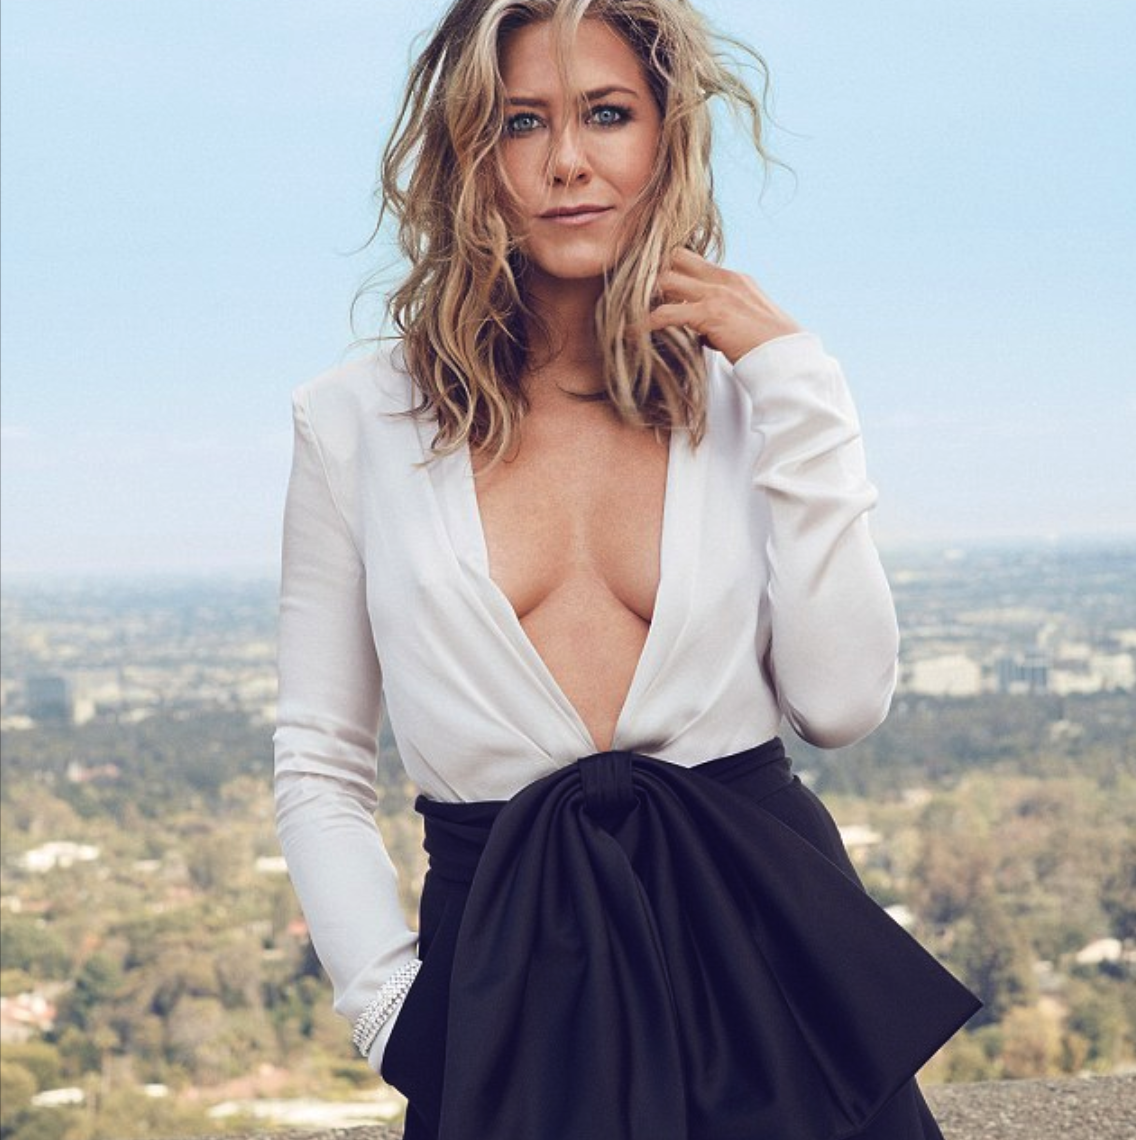 Jennifer Aniston Shows a Ton of Cleavage to InStyle Magazine [SFW PICS]